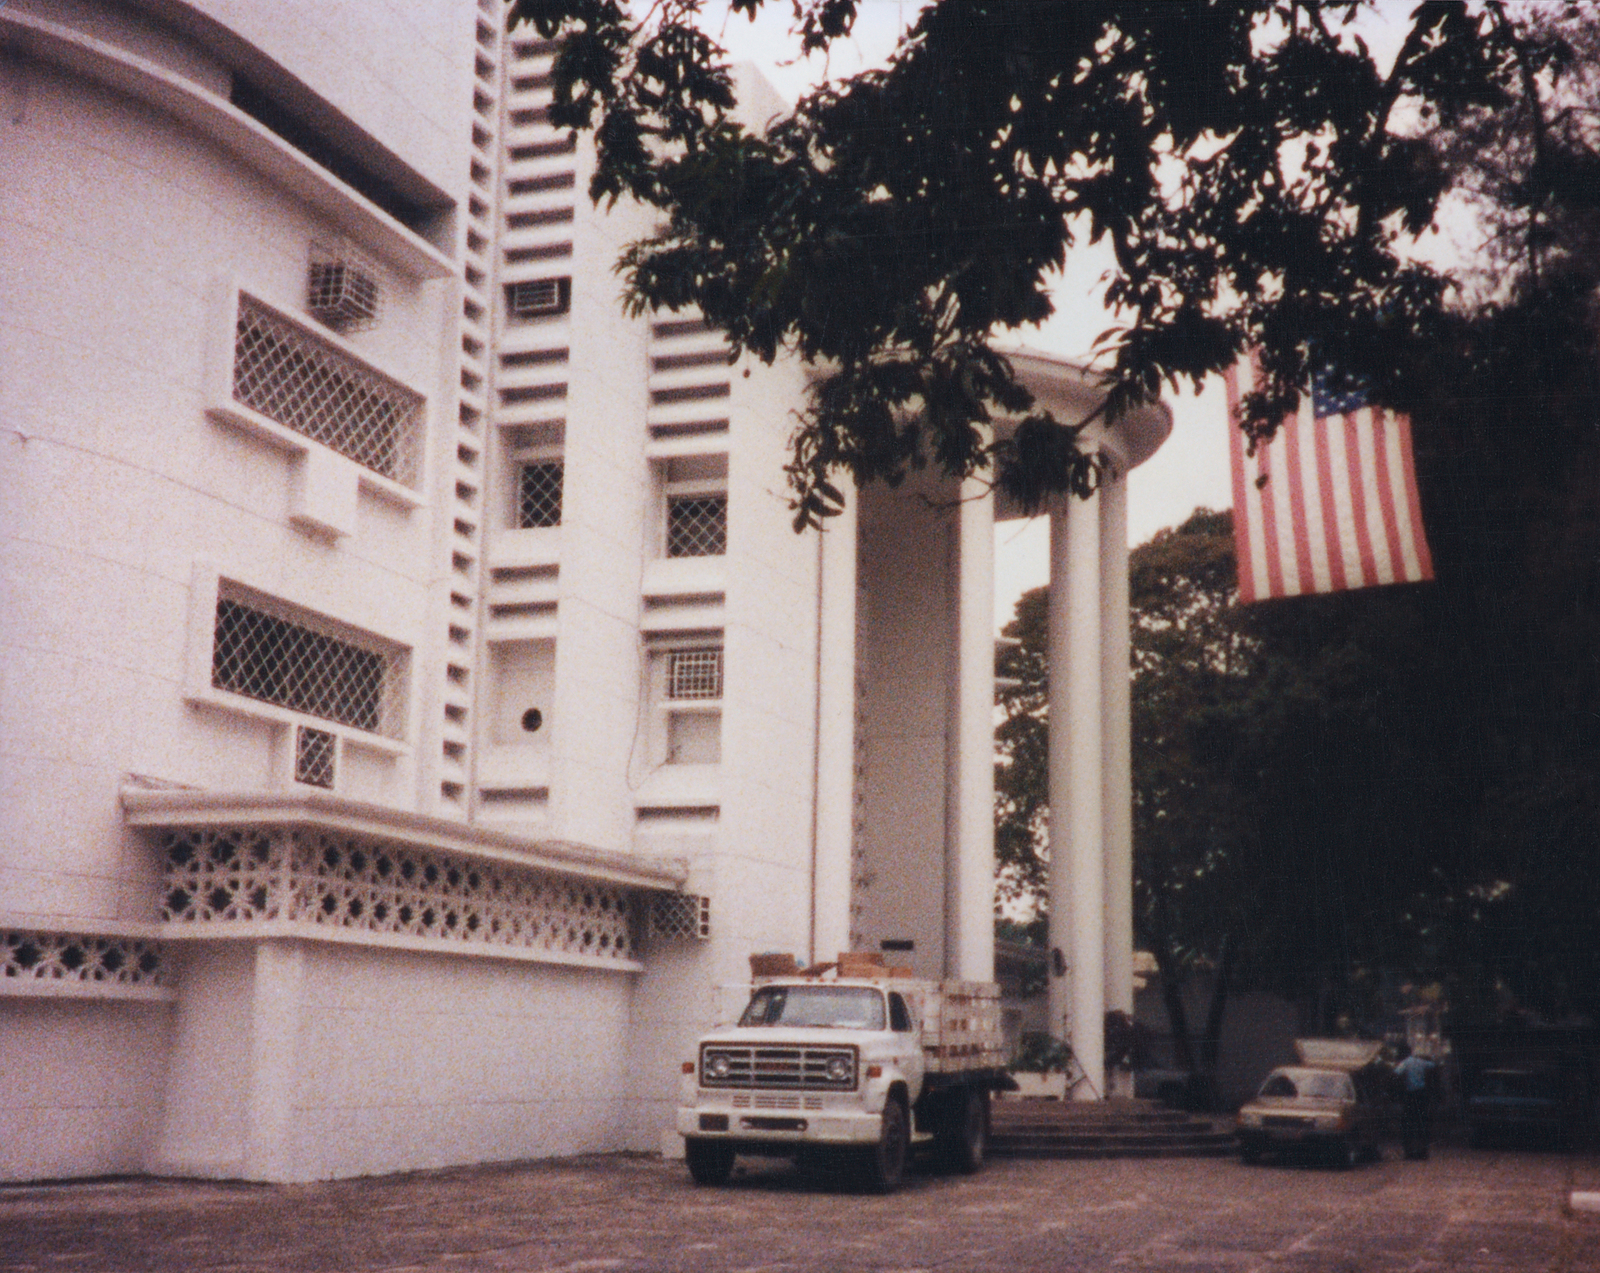 Brazzaville - Chancery Office Building - 1986